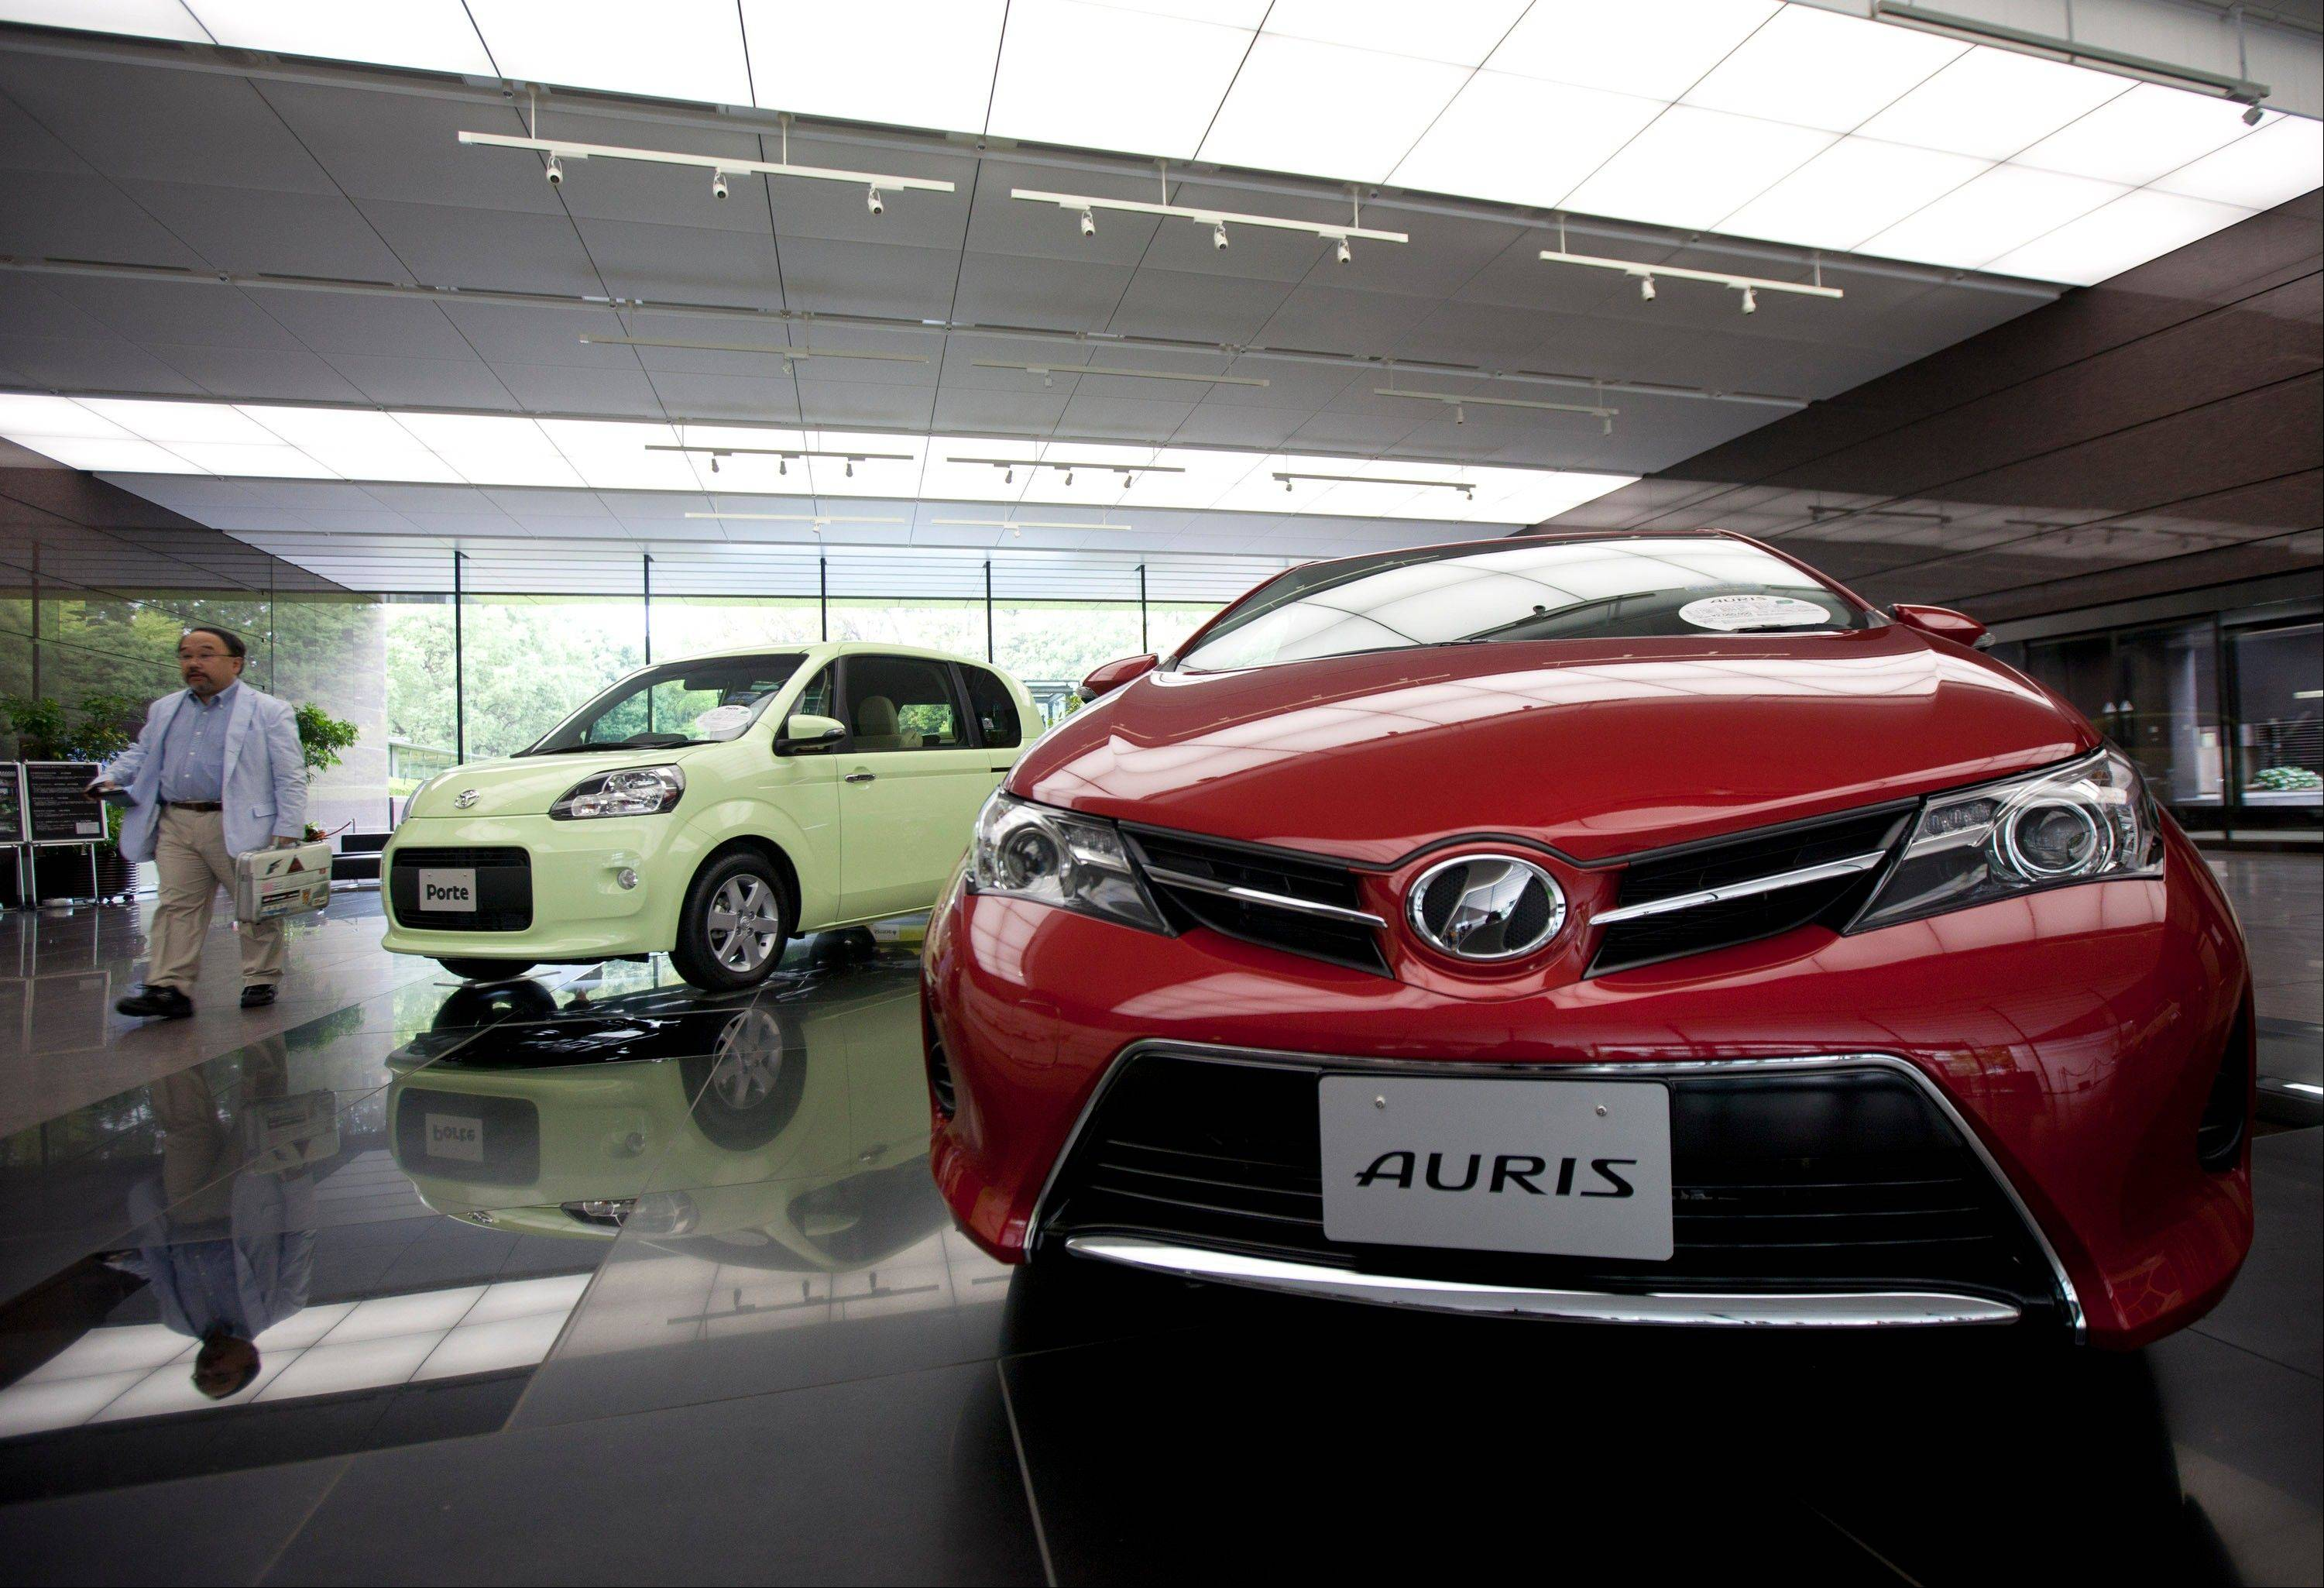 A visitor walks near a Toyota Motor Corp. Auris compact vehicle, right, displayed at the company's head offices in Tokyo, Japan, on Monday, Nov. 5, 2012.